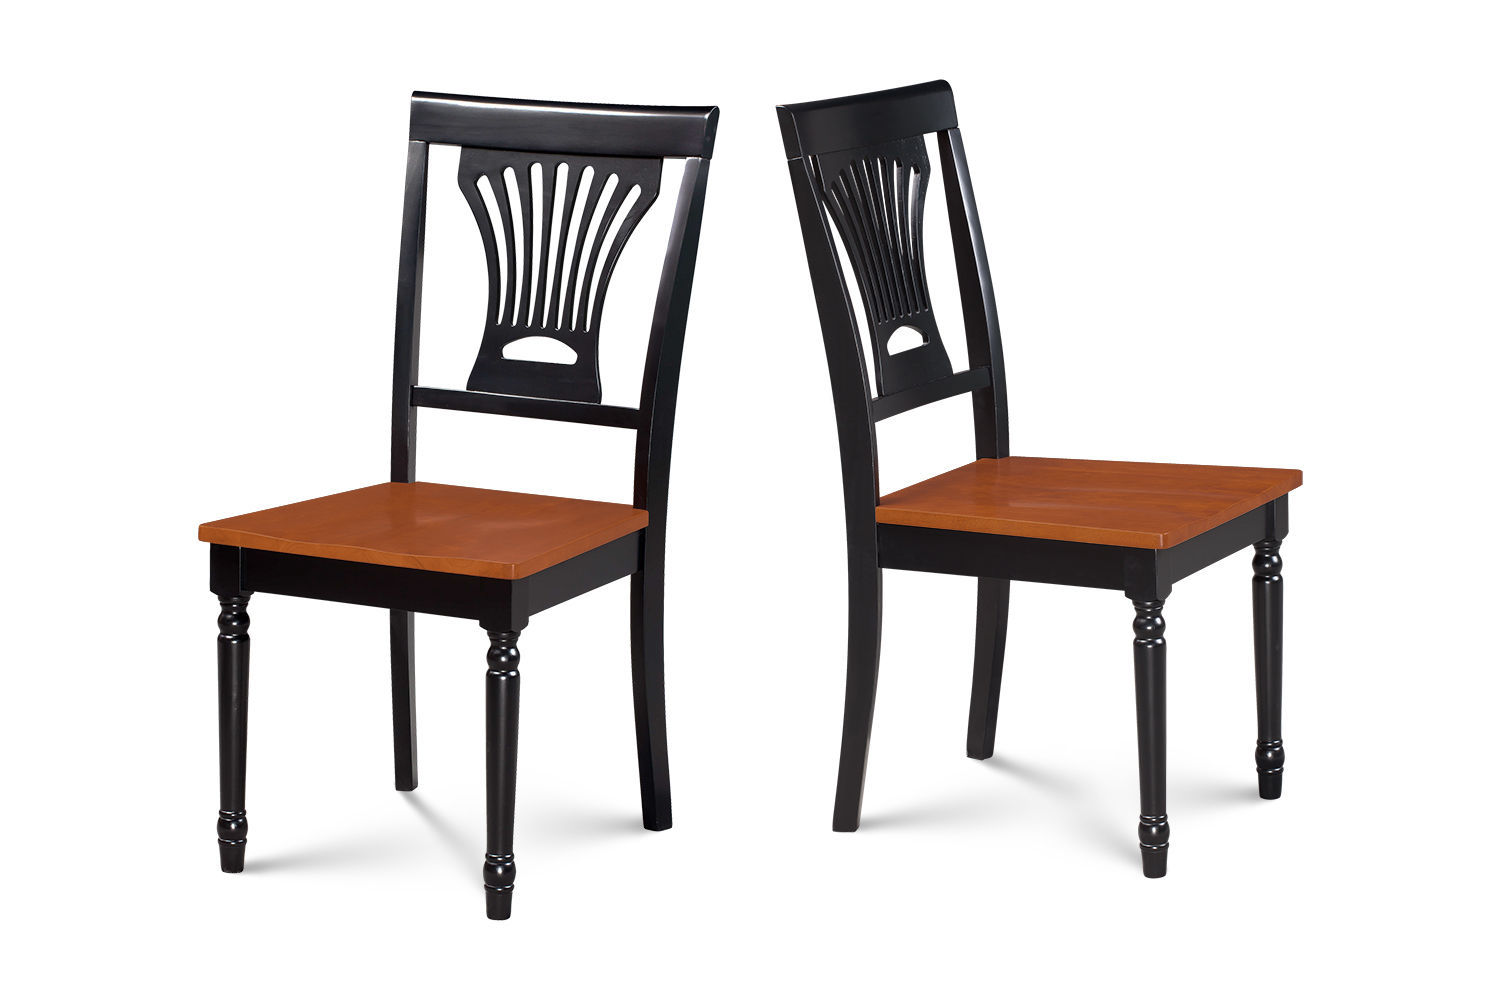 SET OF 2 DINING SIDE CHAIR  WITH WOODEN SEAT IN BLACK & CHERRY FINISH